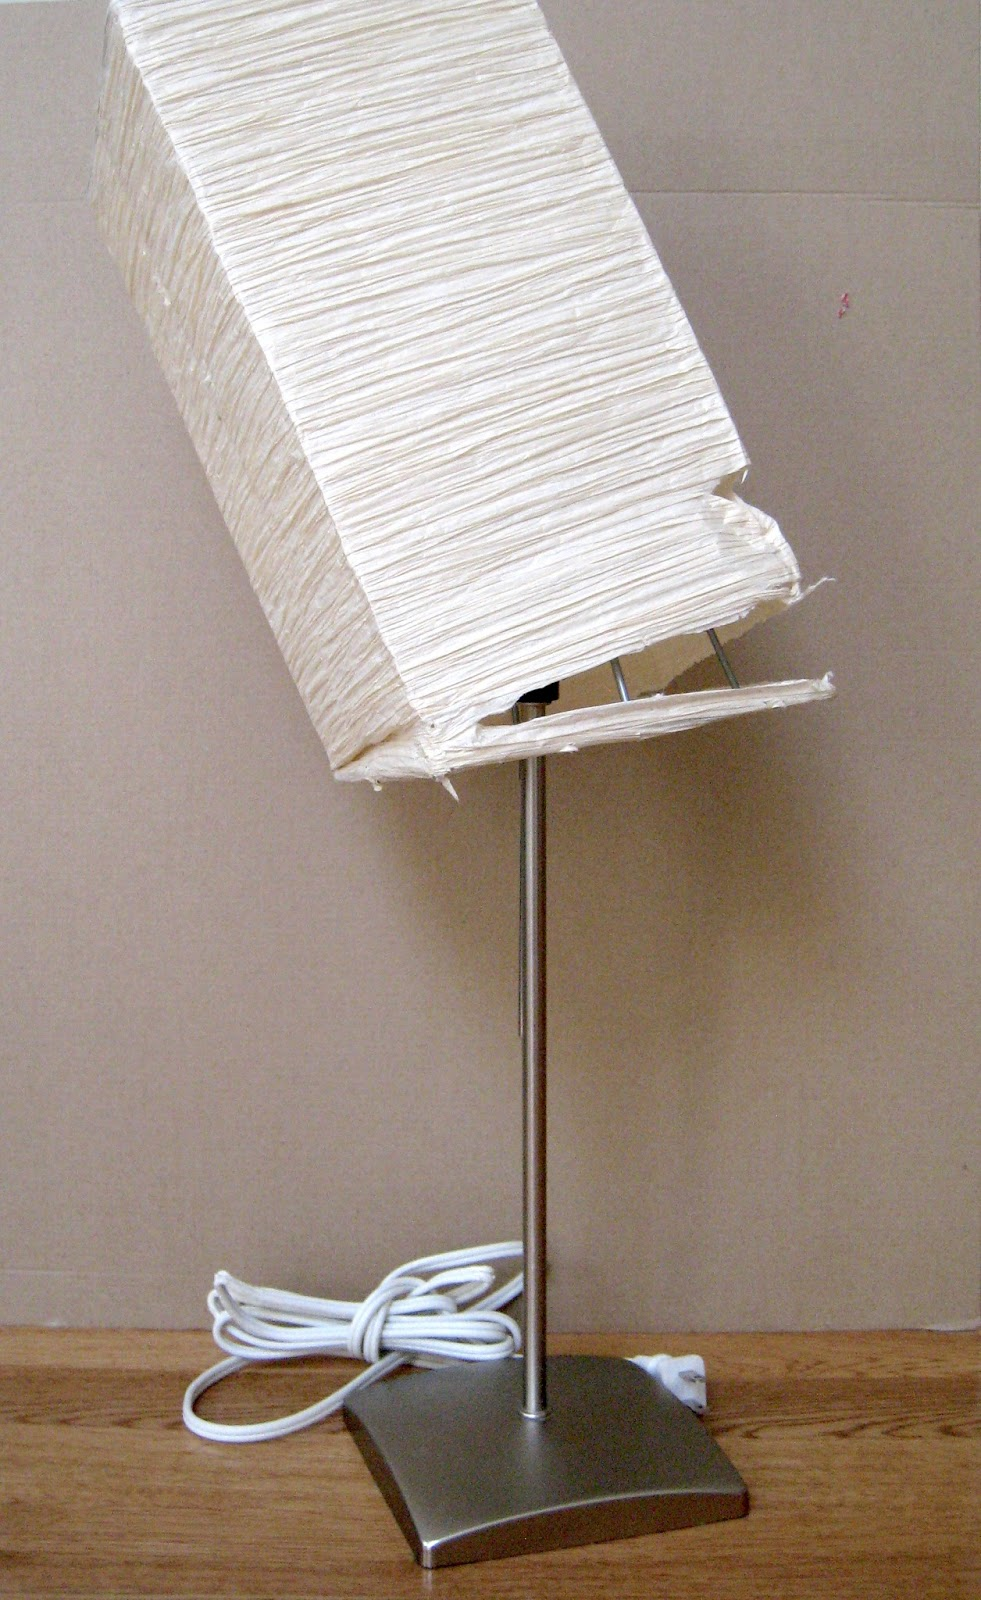 Ikea Lamp Shades | newhairstylesformen2014.com